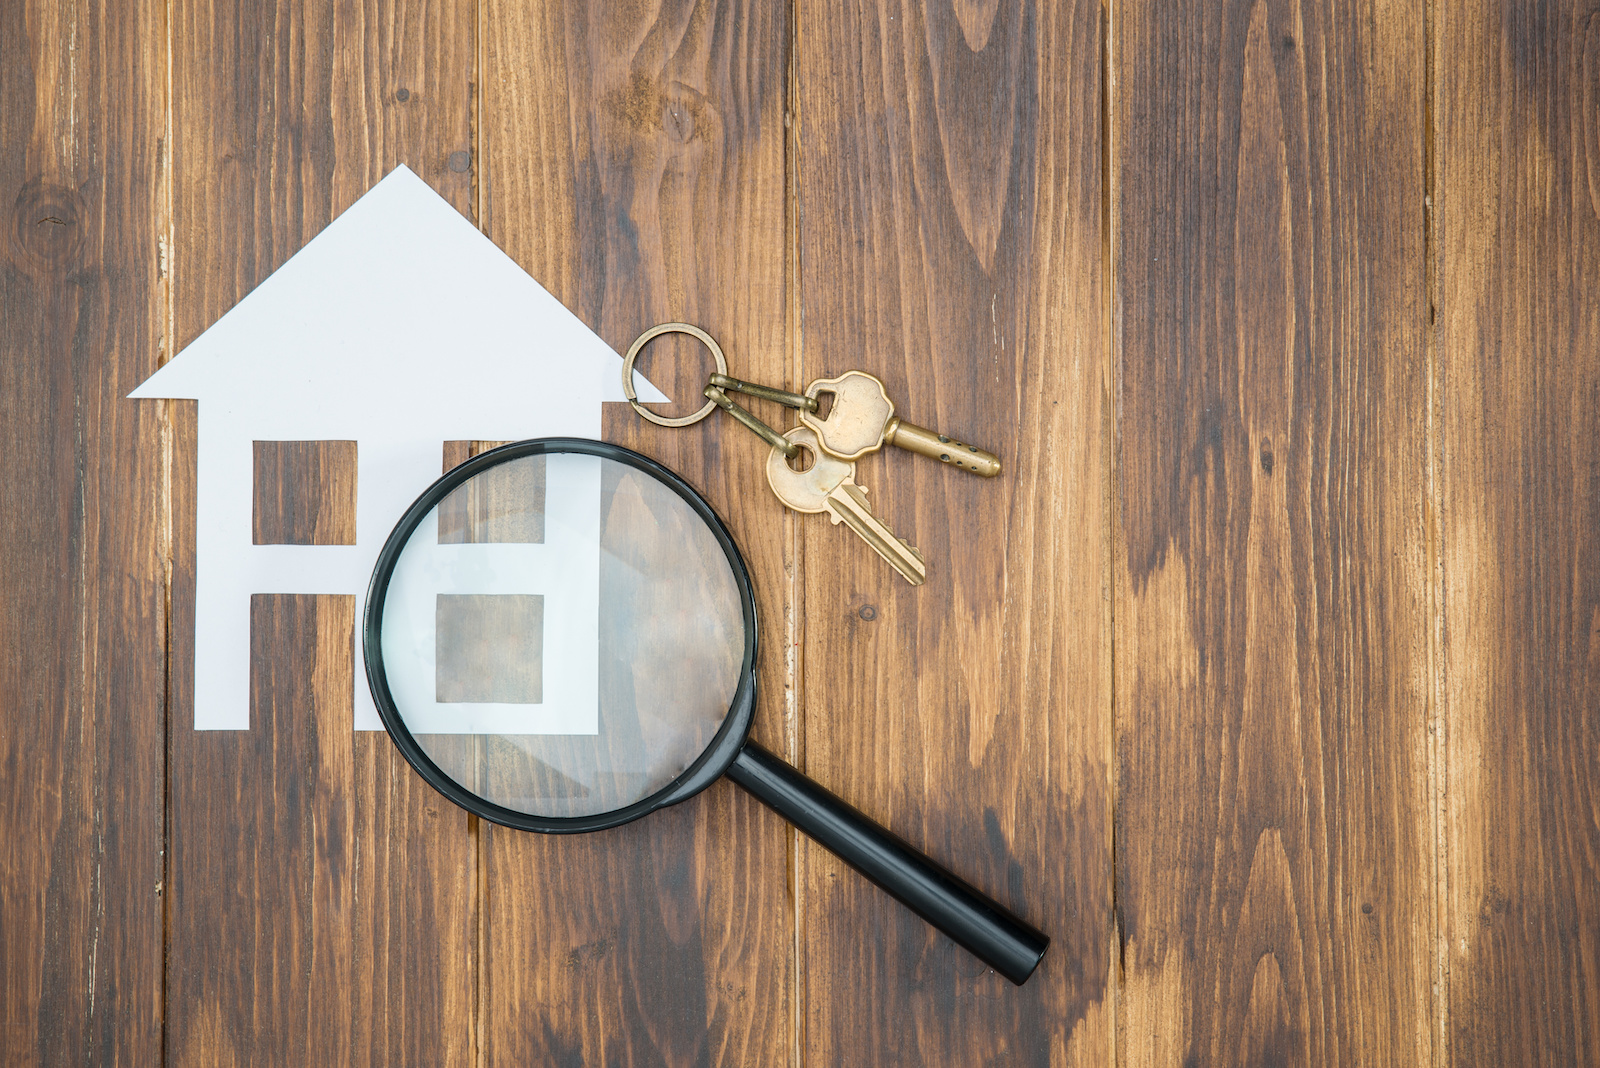 How to Waive the Home Inspection When Making an Offer on a House